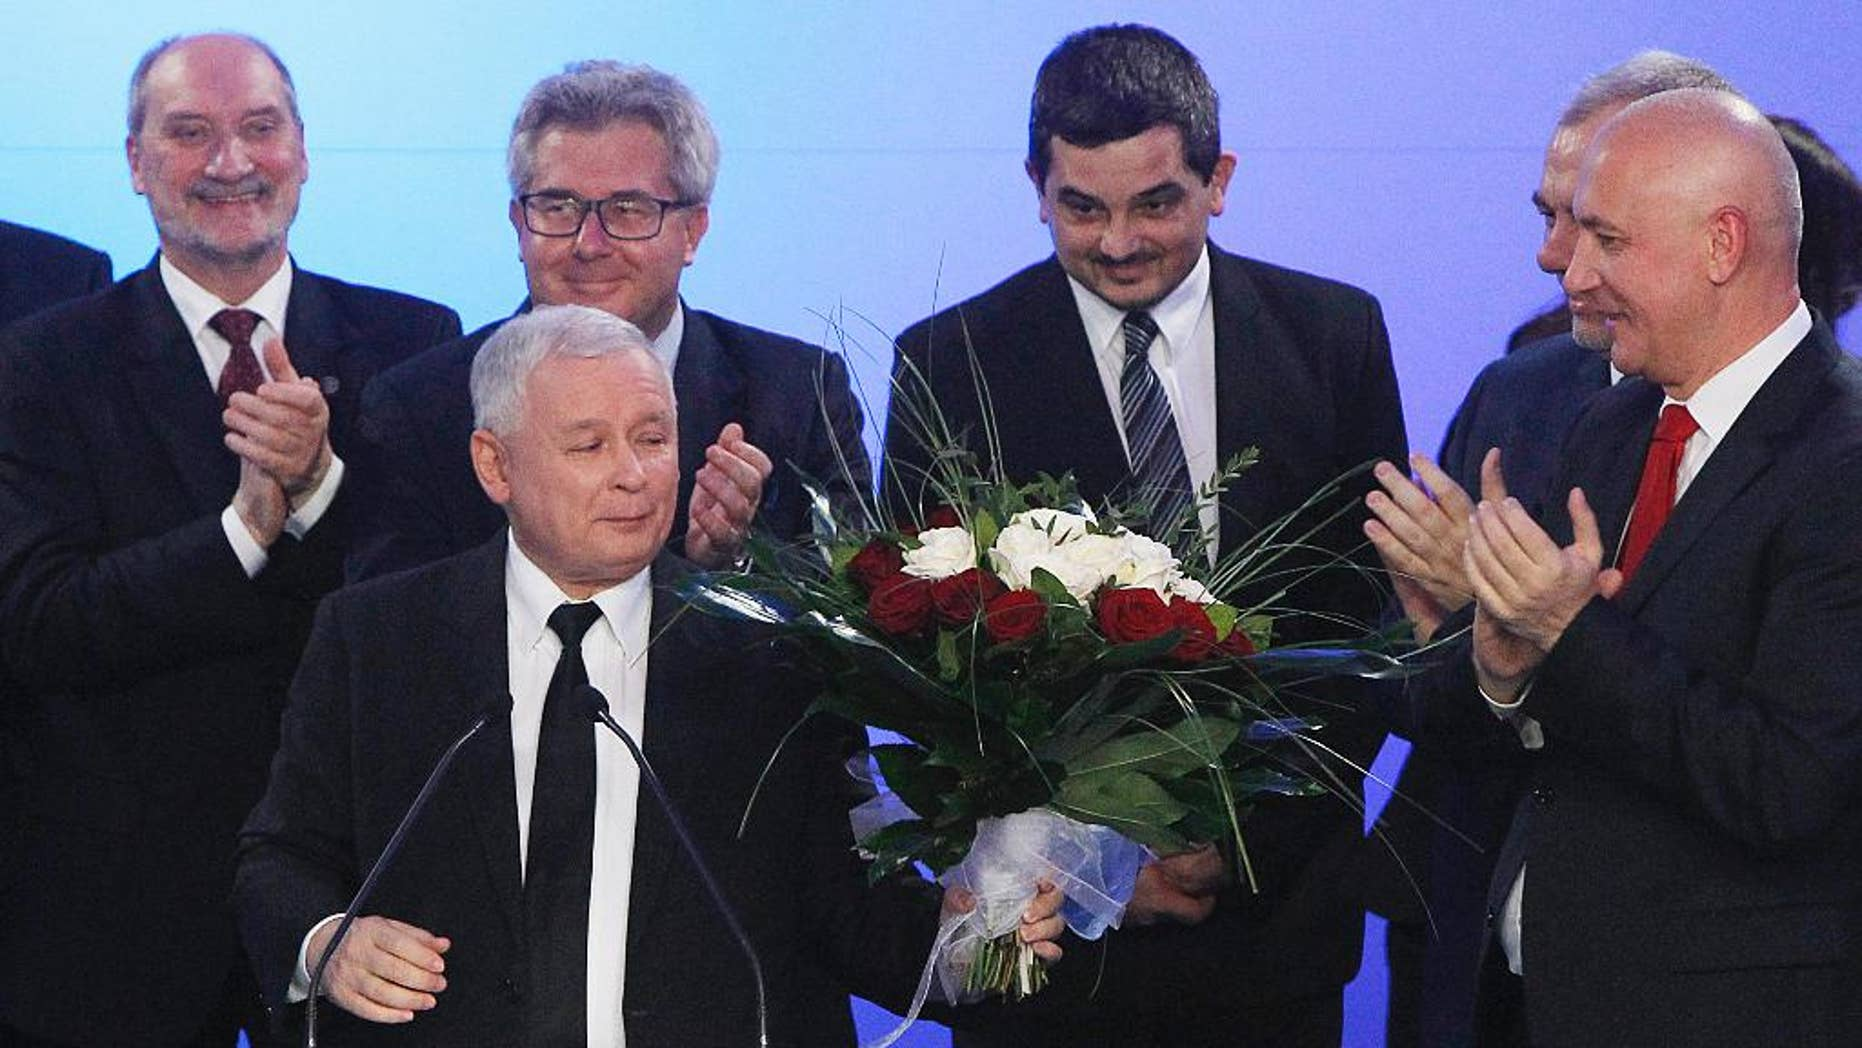 The Law and Justice party leader Jaroslaw Kaczynski receives flowers during the election night after exit polls were announced following the end of the first round of the local elections, in Warsaw, Poland, Sunday, Nov. 26, 2006. The elections exemplify the ongoing political struggle in Poland between the ruling Civic Platform party and opposition Law and Justice, in Warsaw, Poland, Sunday, Nov. 16, 2014.(AP Photo/Czarek Sokolowski)